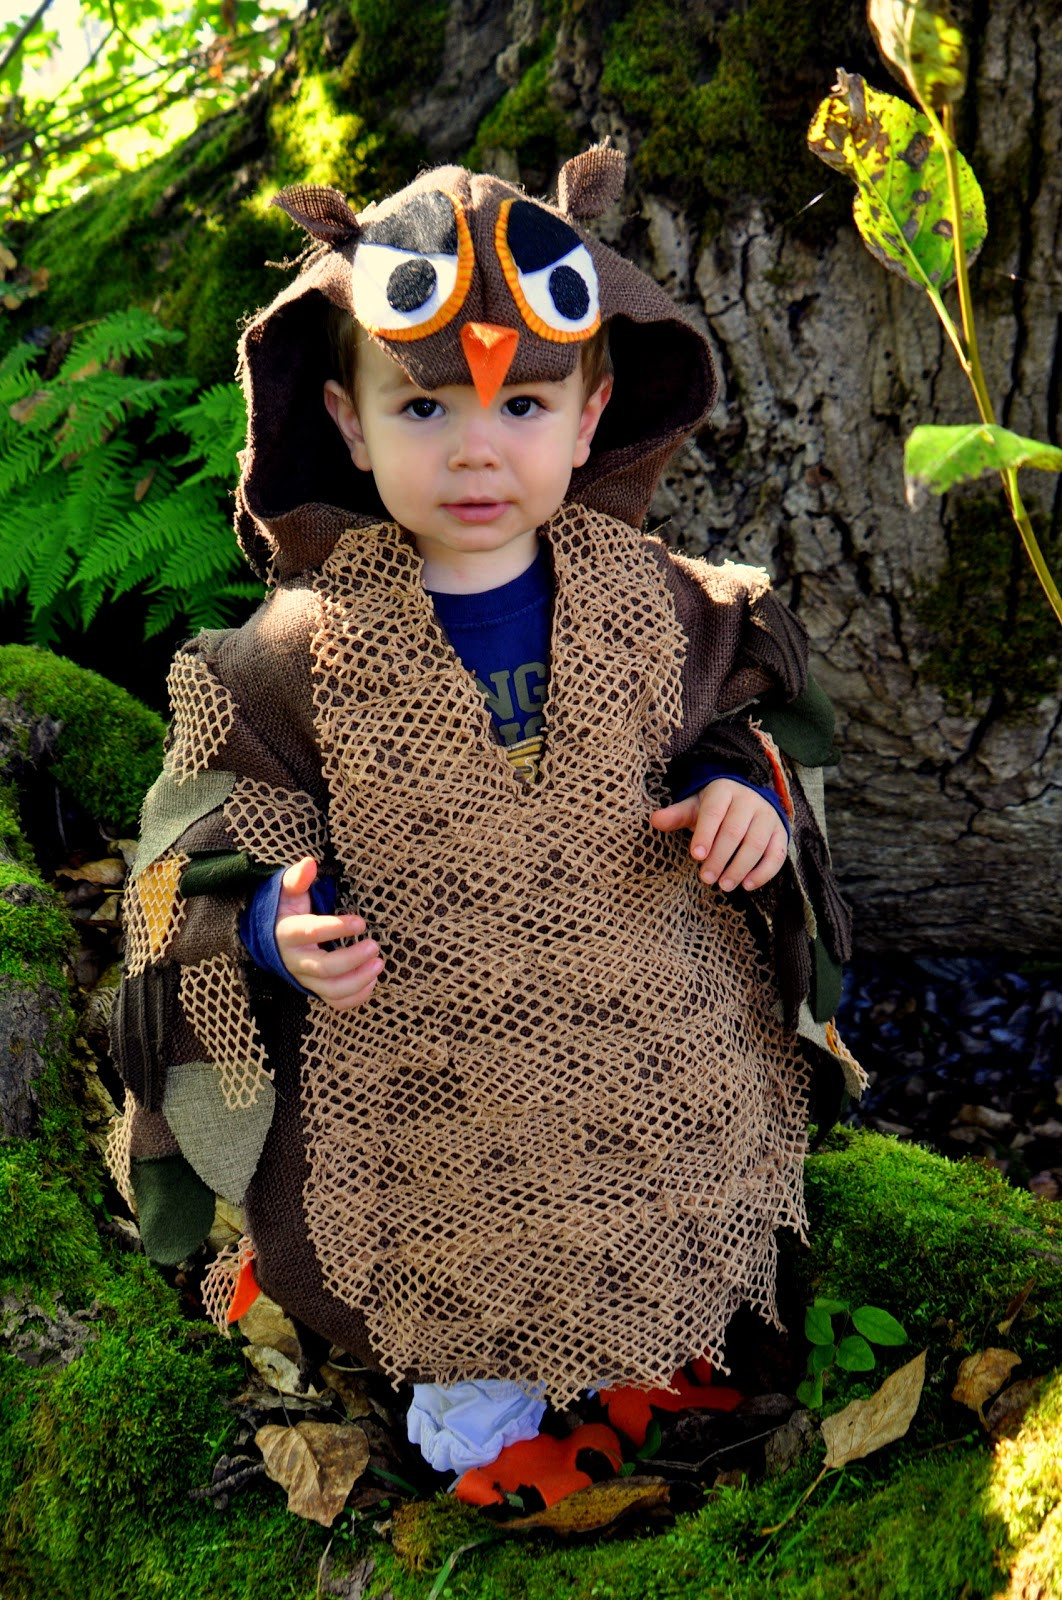 Best ideas about DIY Owl Costumes . Save or Pin SweeterThanSweets Cutest Handmade DIY Kids Halloween Now.